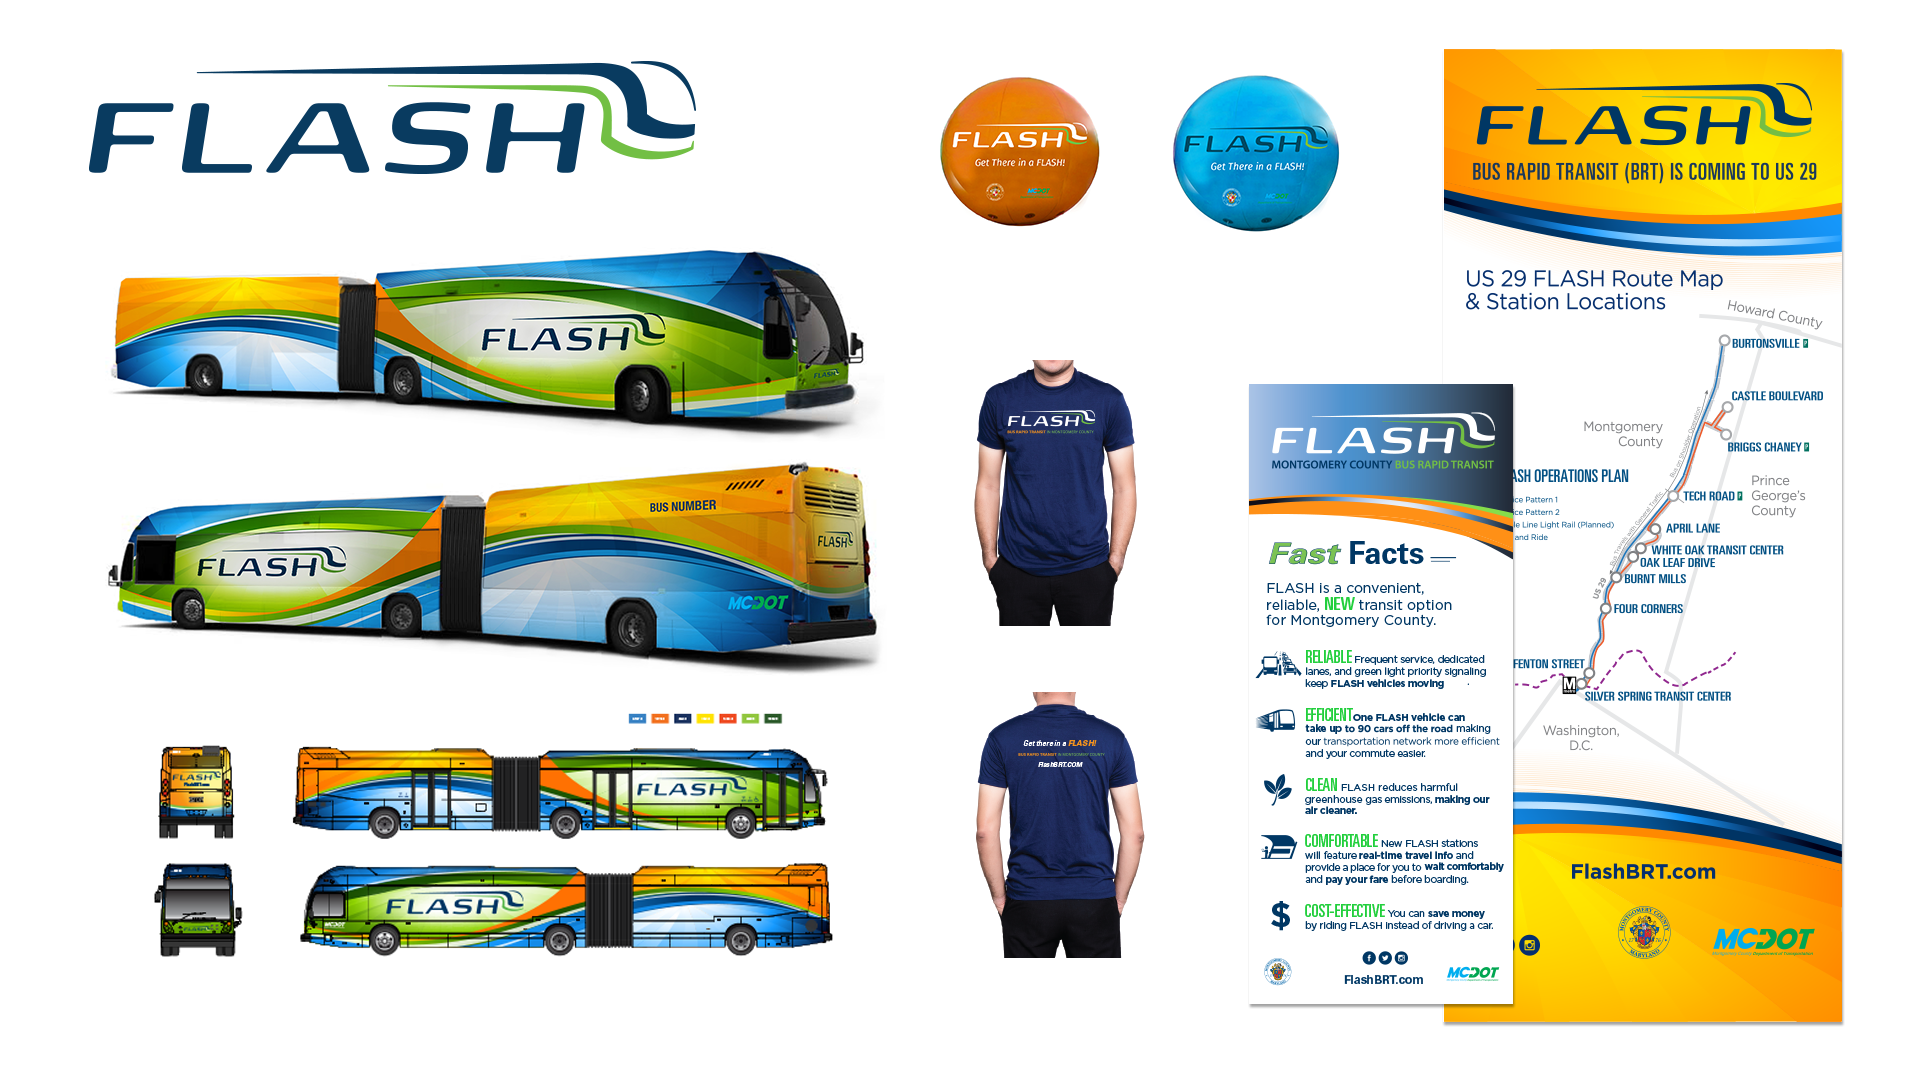 Flash branding/creative campaign platform with colors, styles, messaging